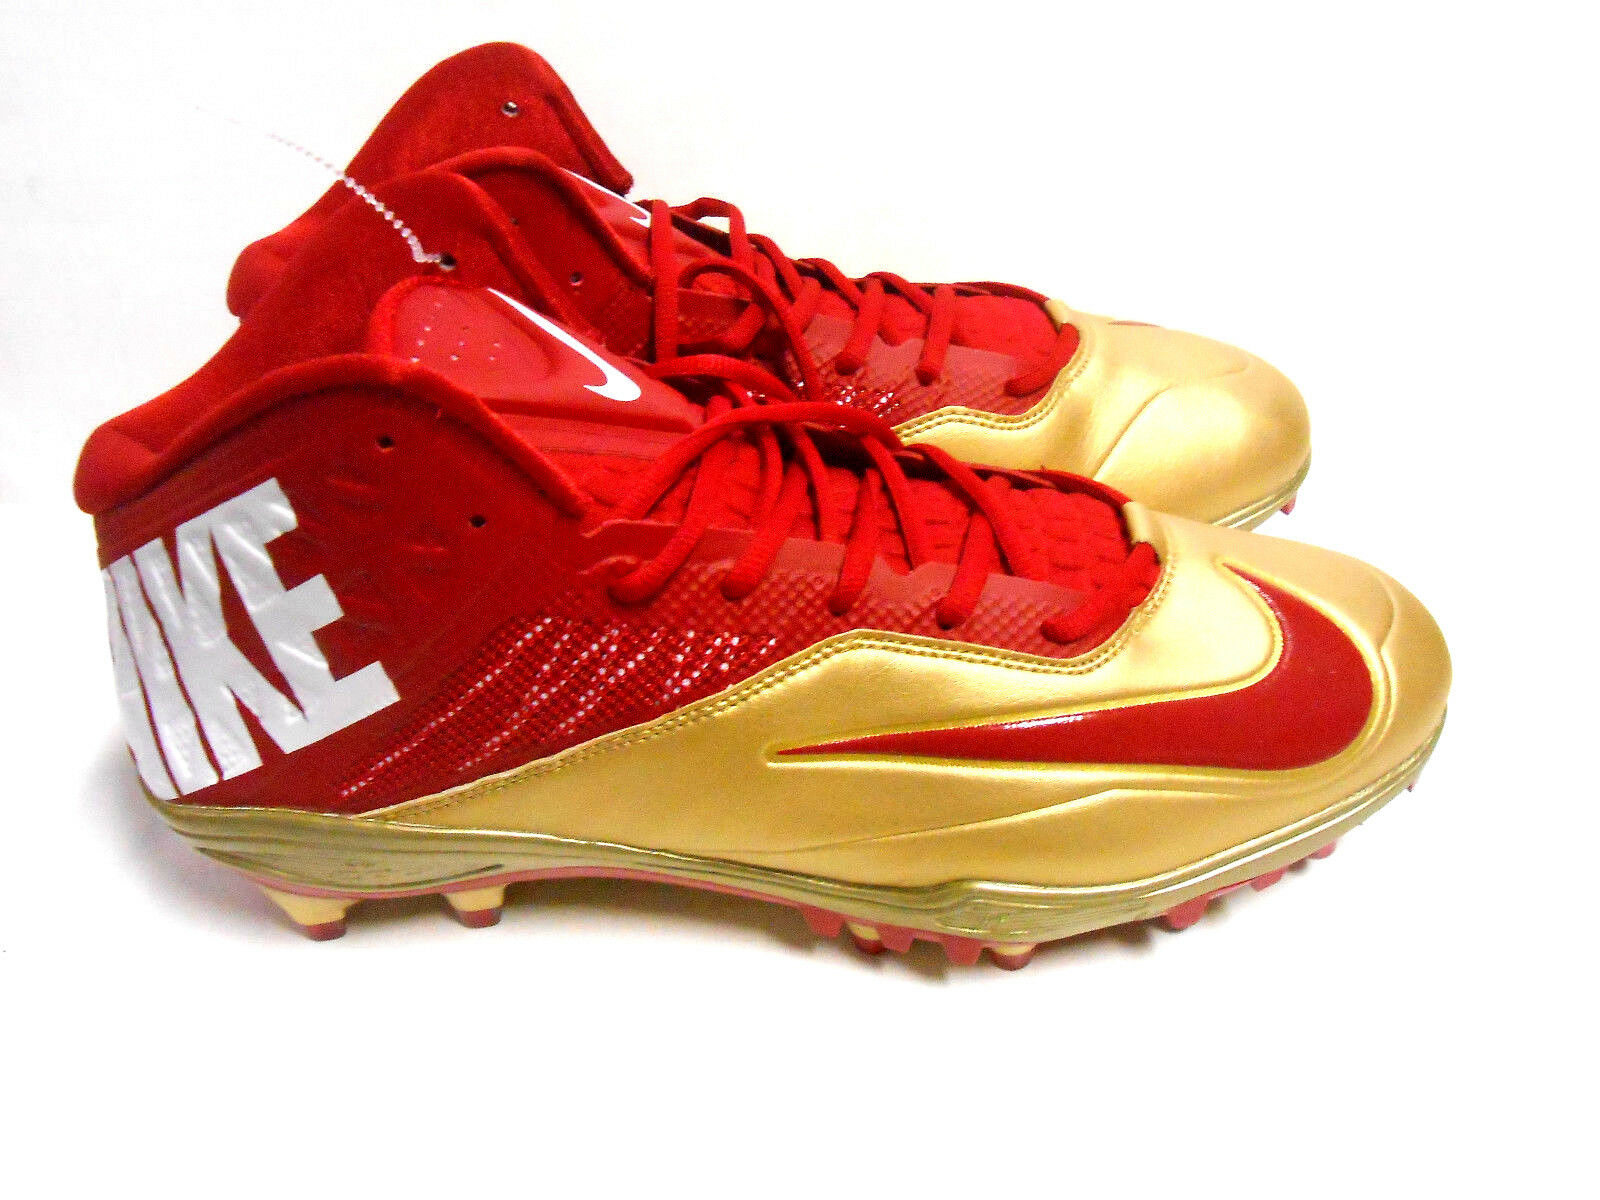 Nike Zoom Code Elite Red Gold Cleats Football 49ers 620499-628 FSU Men Comfortable